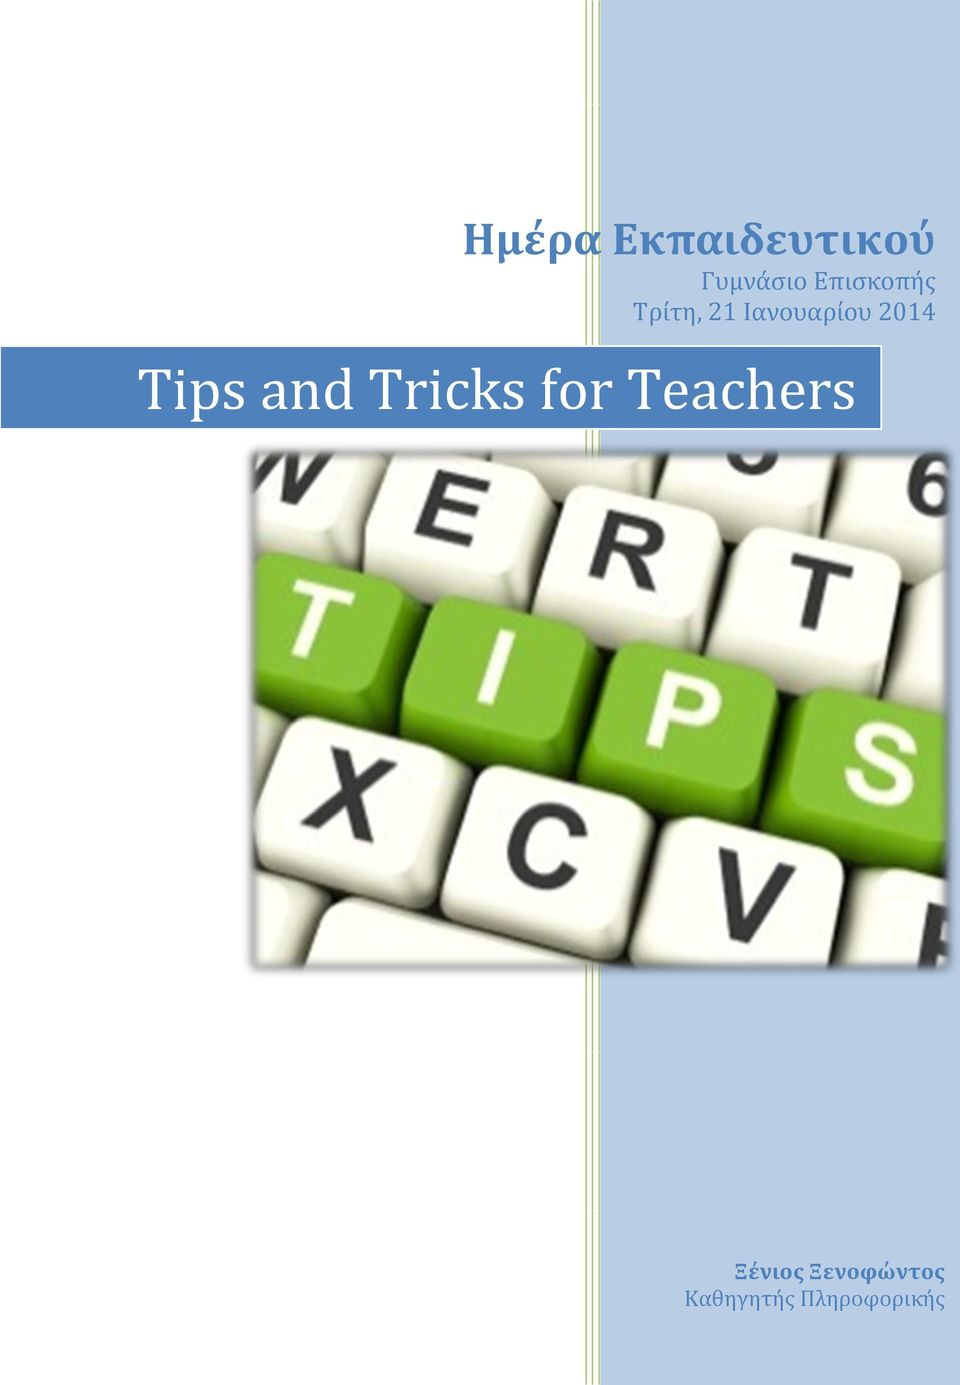 2014 Tips and Tricks for Teachers